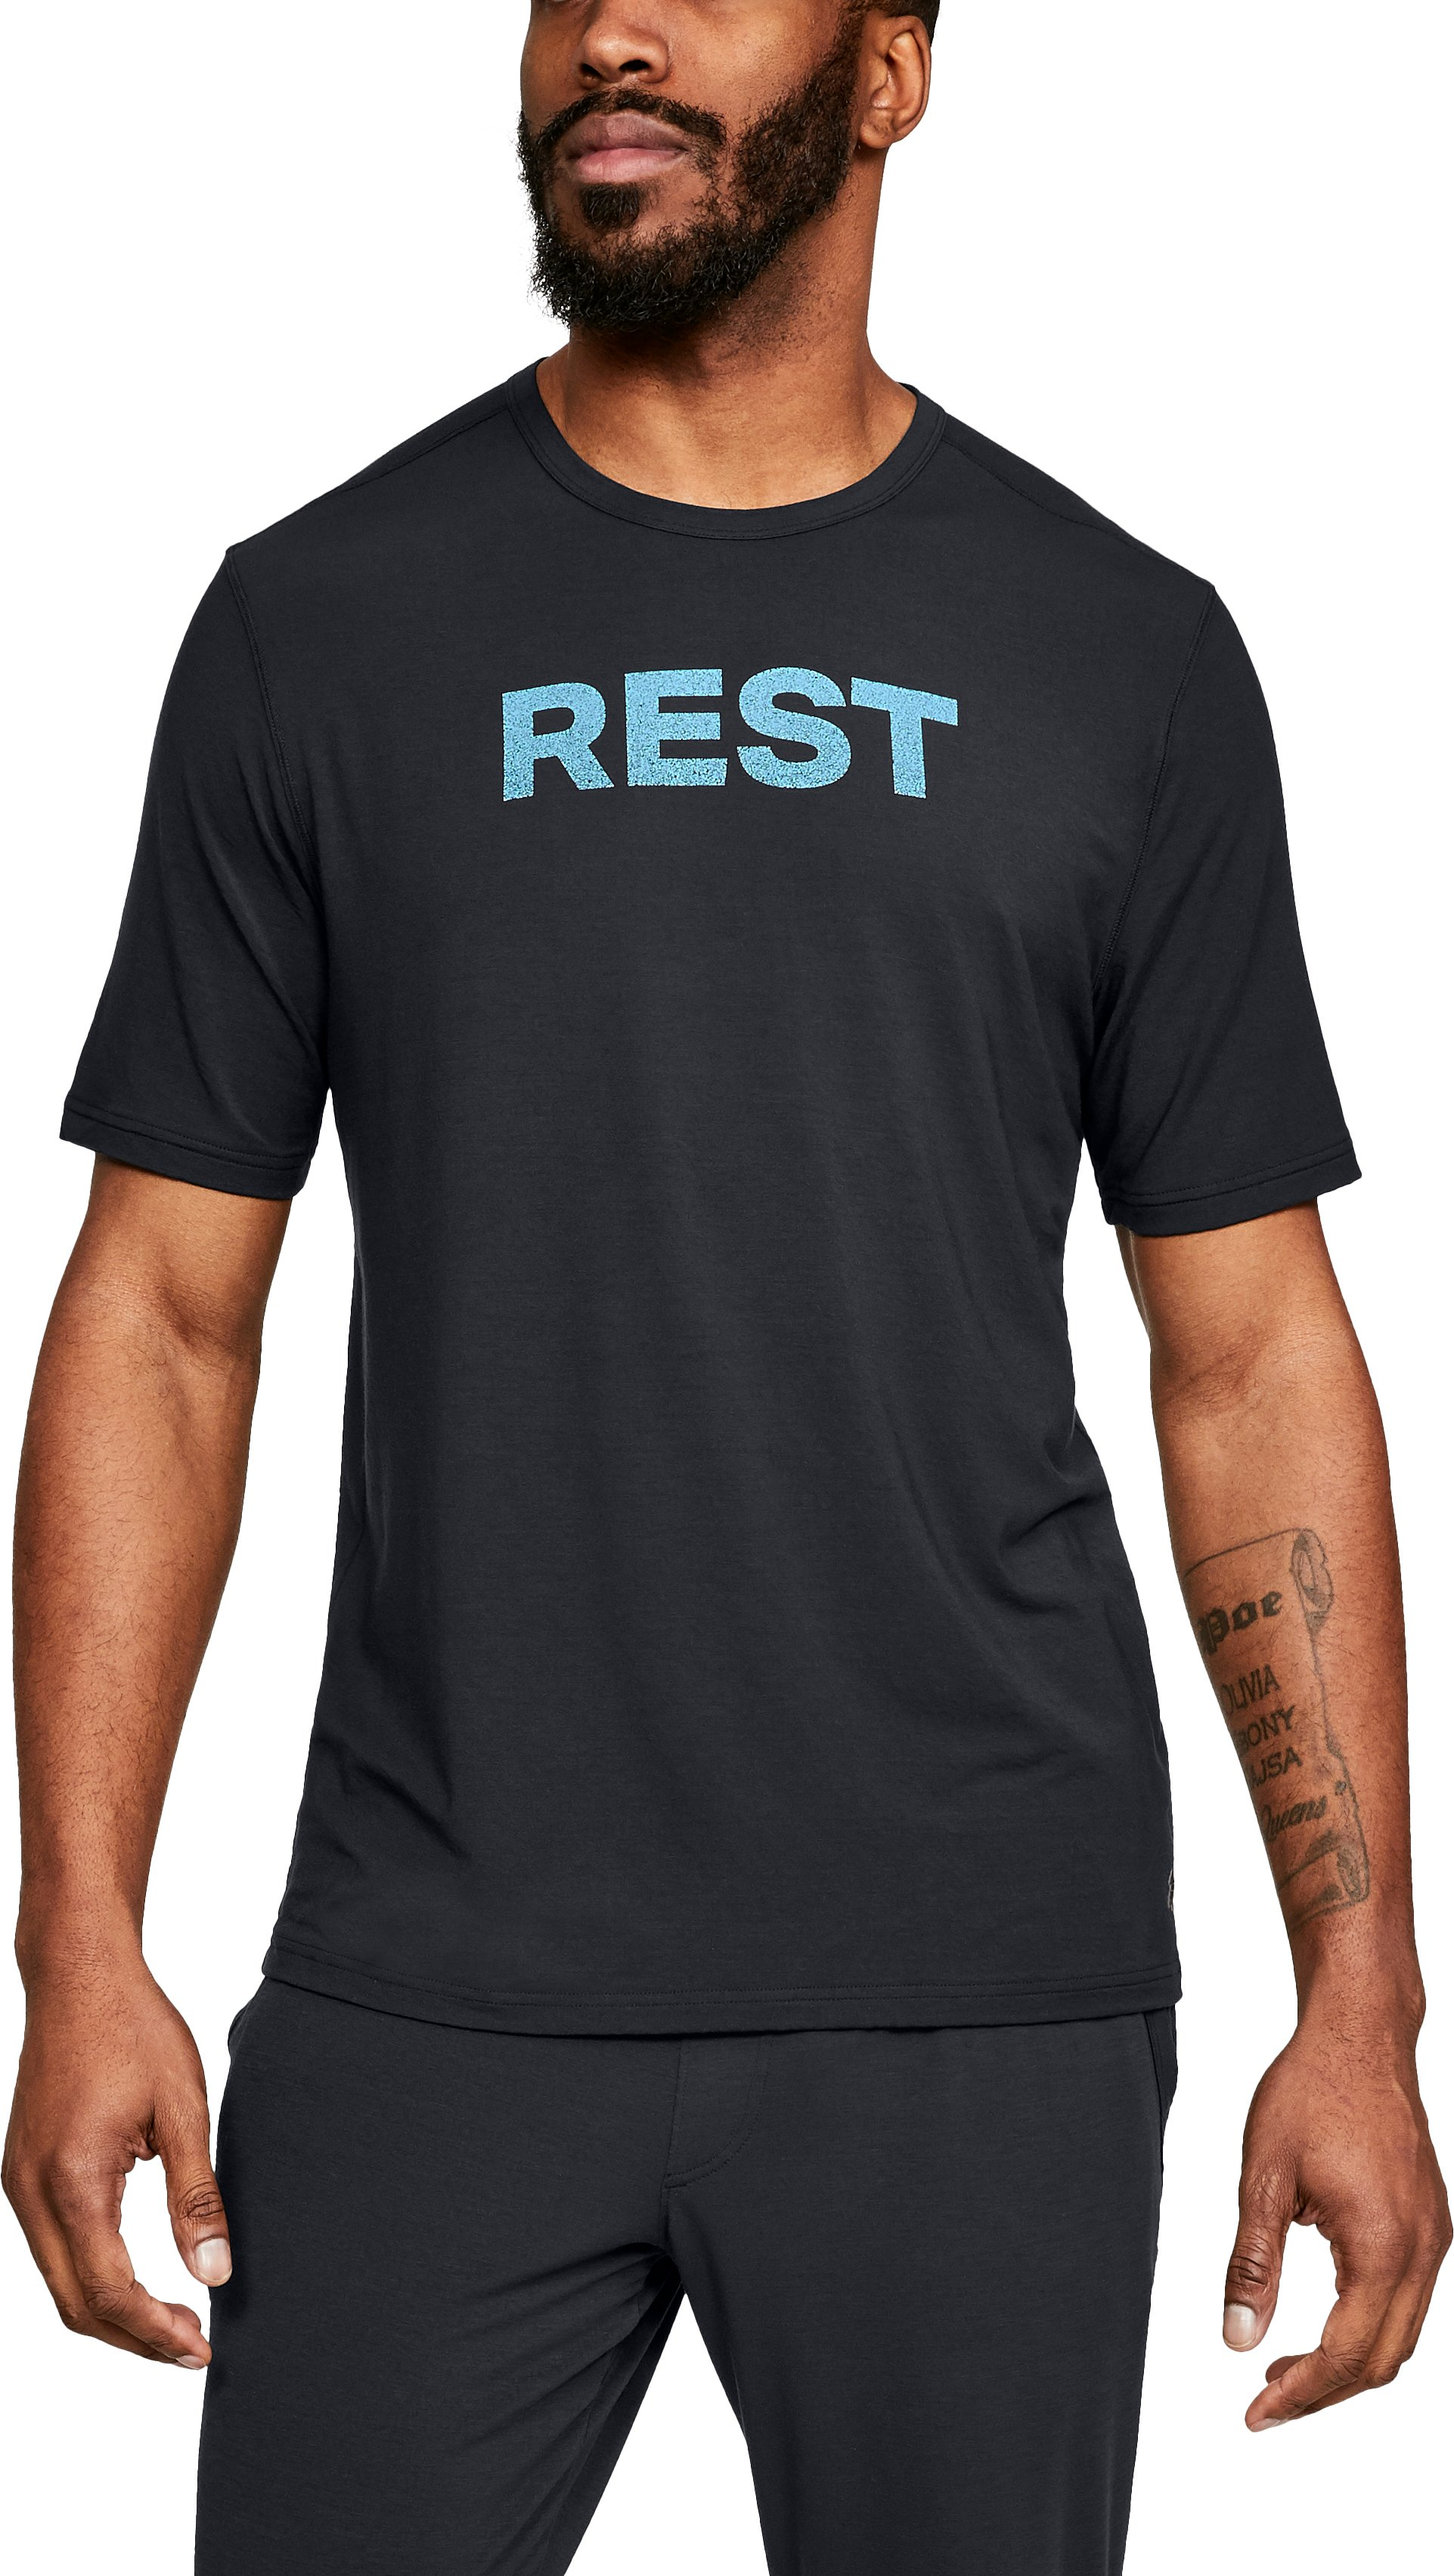 Men's Athlete Recovery Ultra Comfort Sleepwear REST Graphic T-Shirt, Black , zoomed